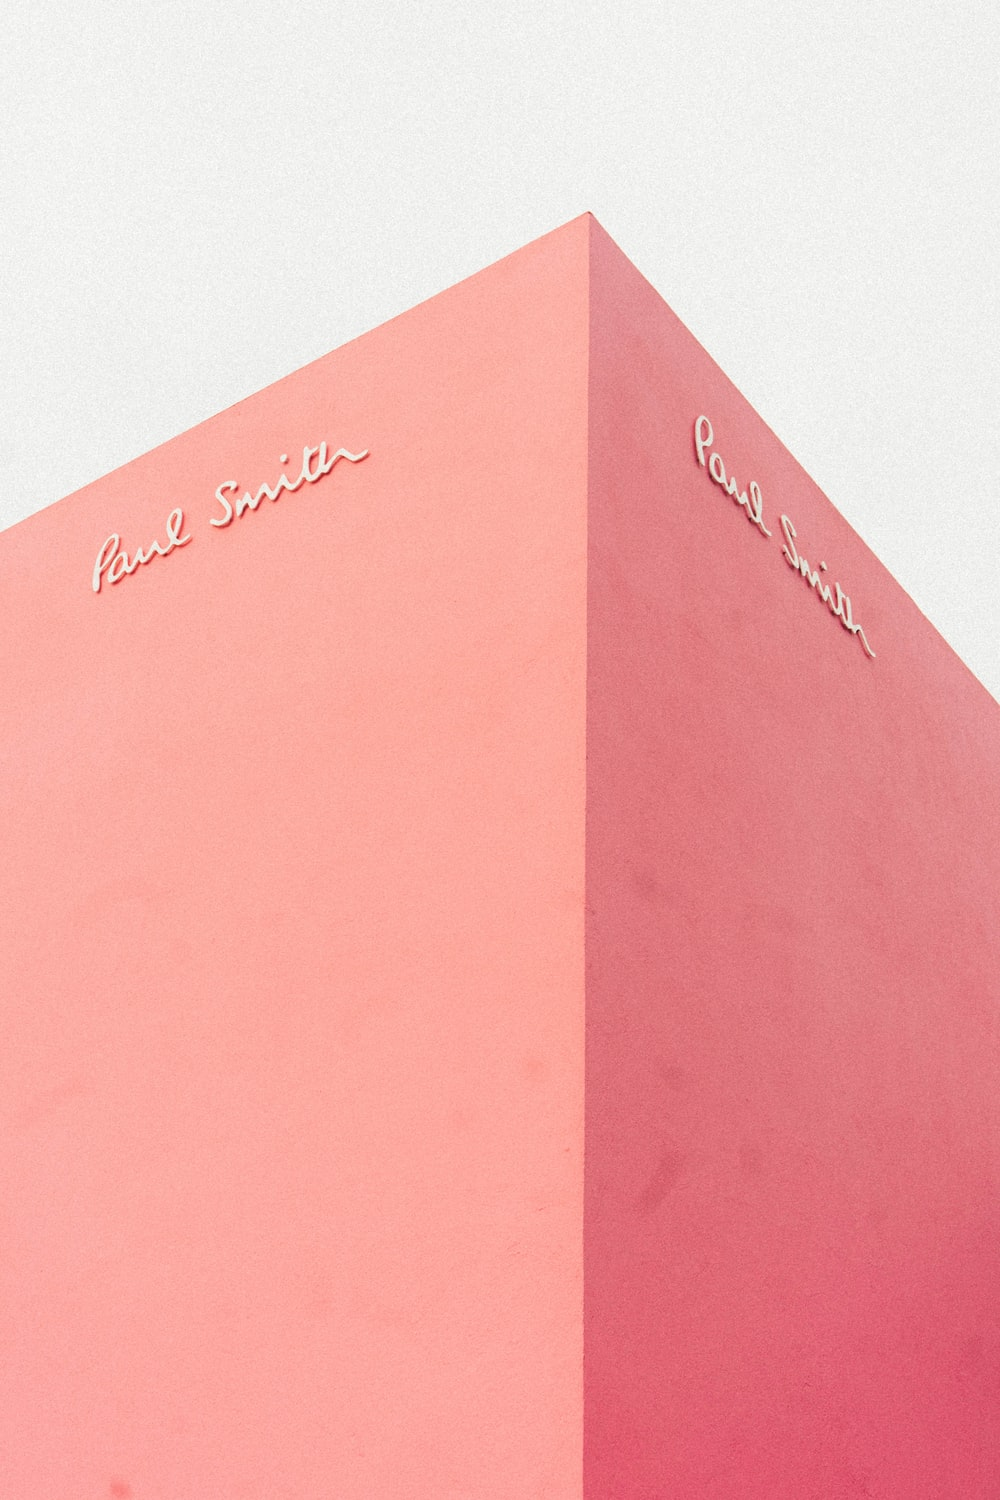 Paul Smith signage on pink wall